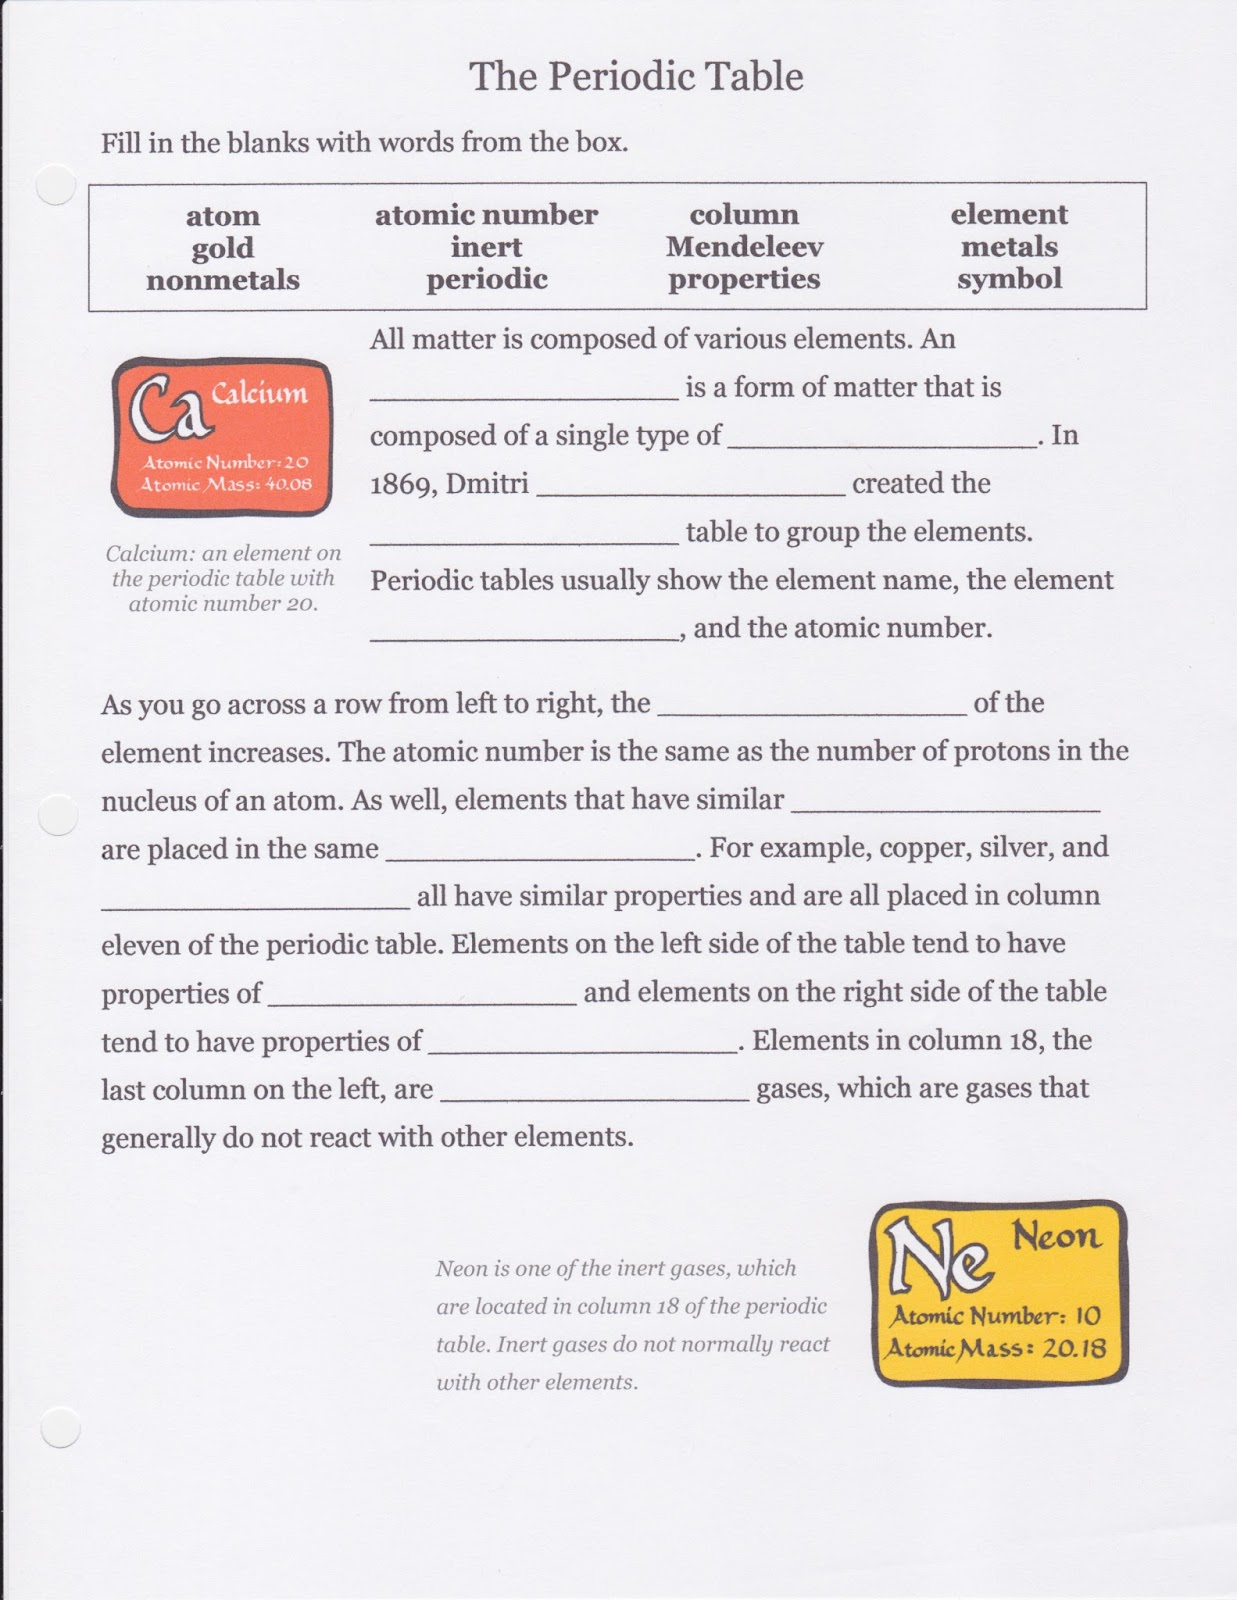 Dr gaydens chemistry class wednesdaythursday 1415 october 2015 students completed a cloze activity on the periodic table you can find the handout below urtaz Choice Image